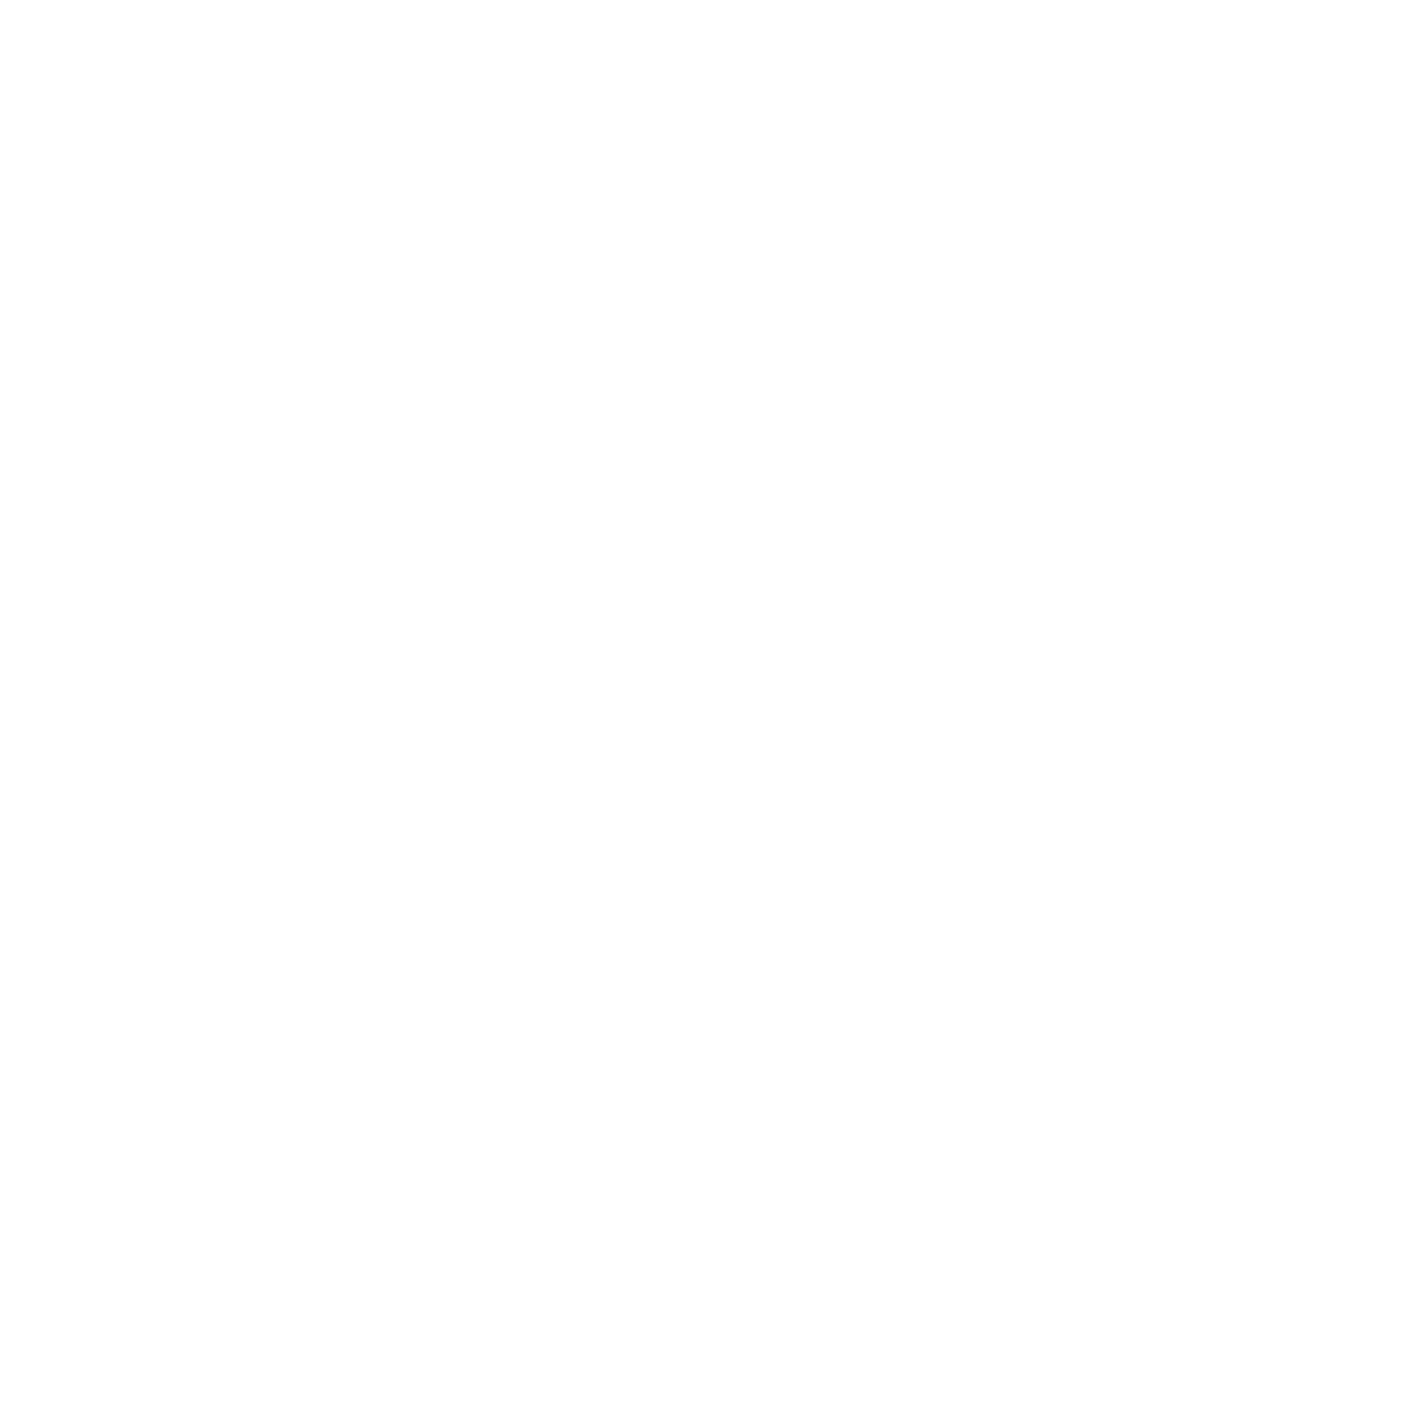 Owen & Edwin - Luxury Dog Apparel